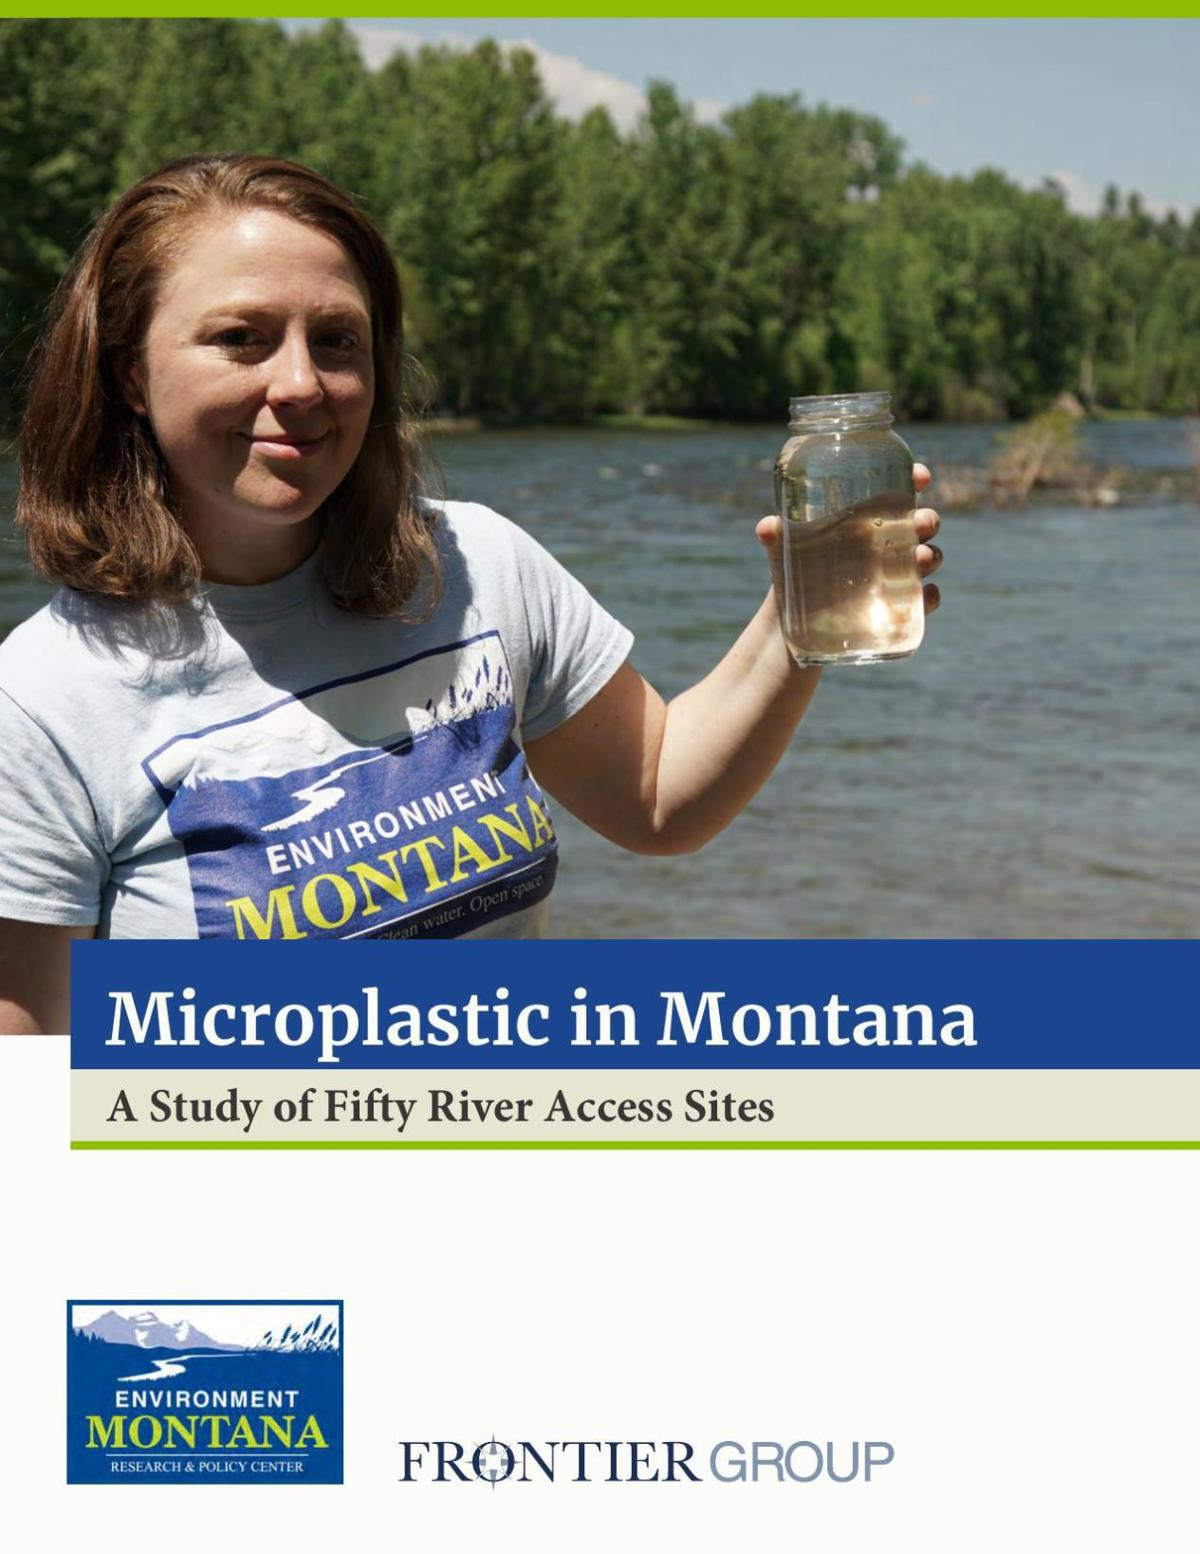 Microplastics in Montana report